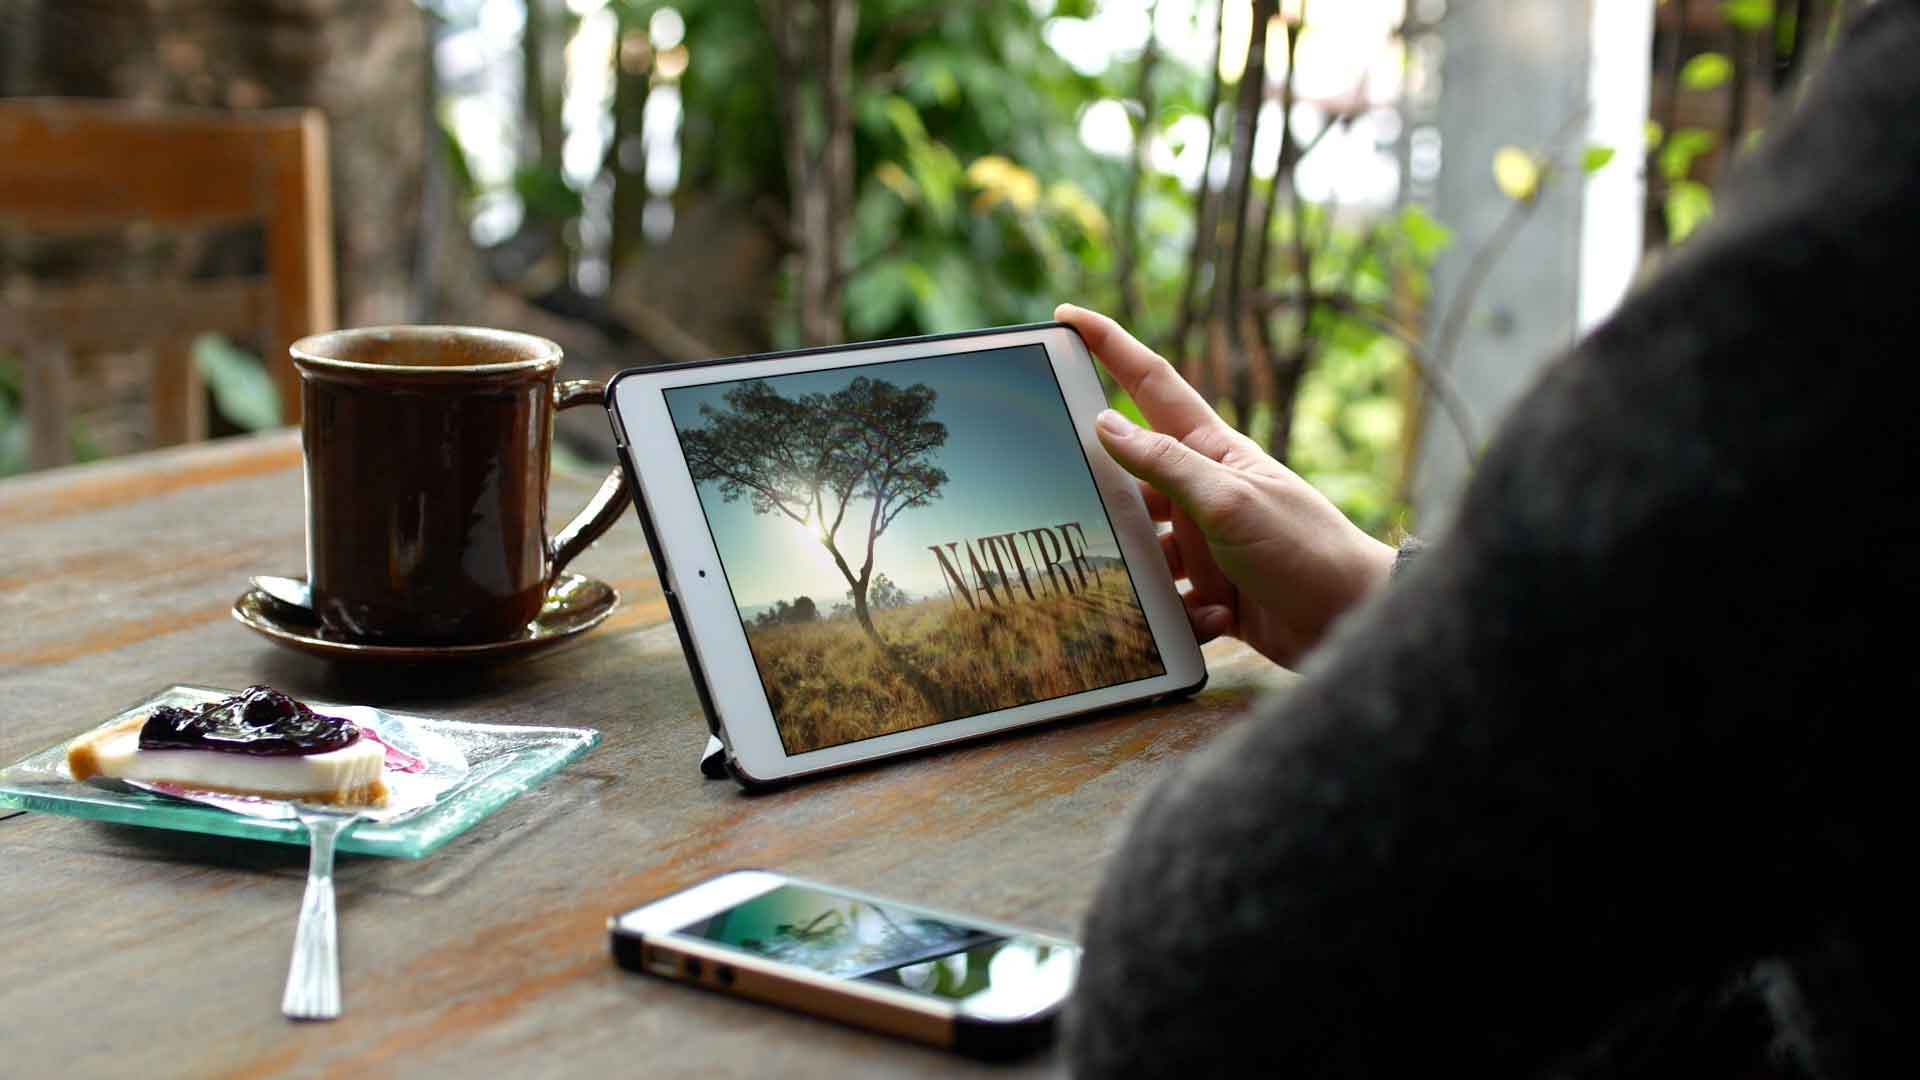 Watching Nature on tablet